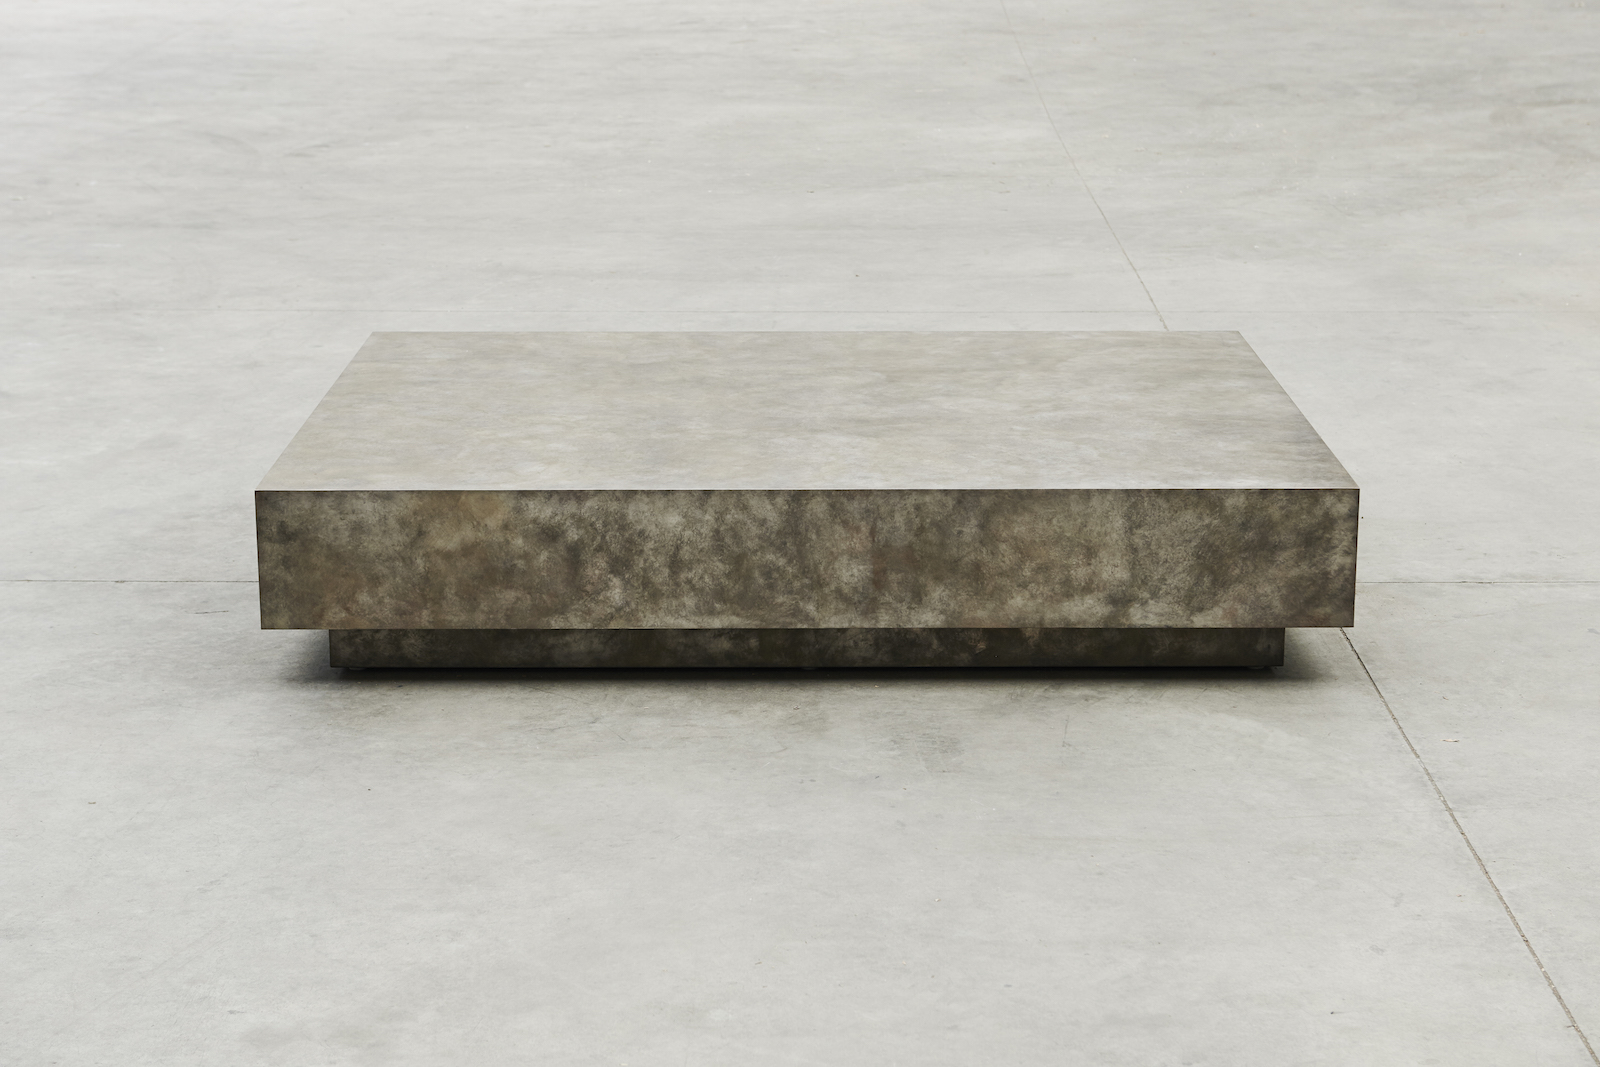 Silver Coffee Table, 2015